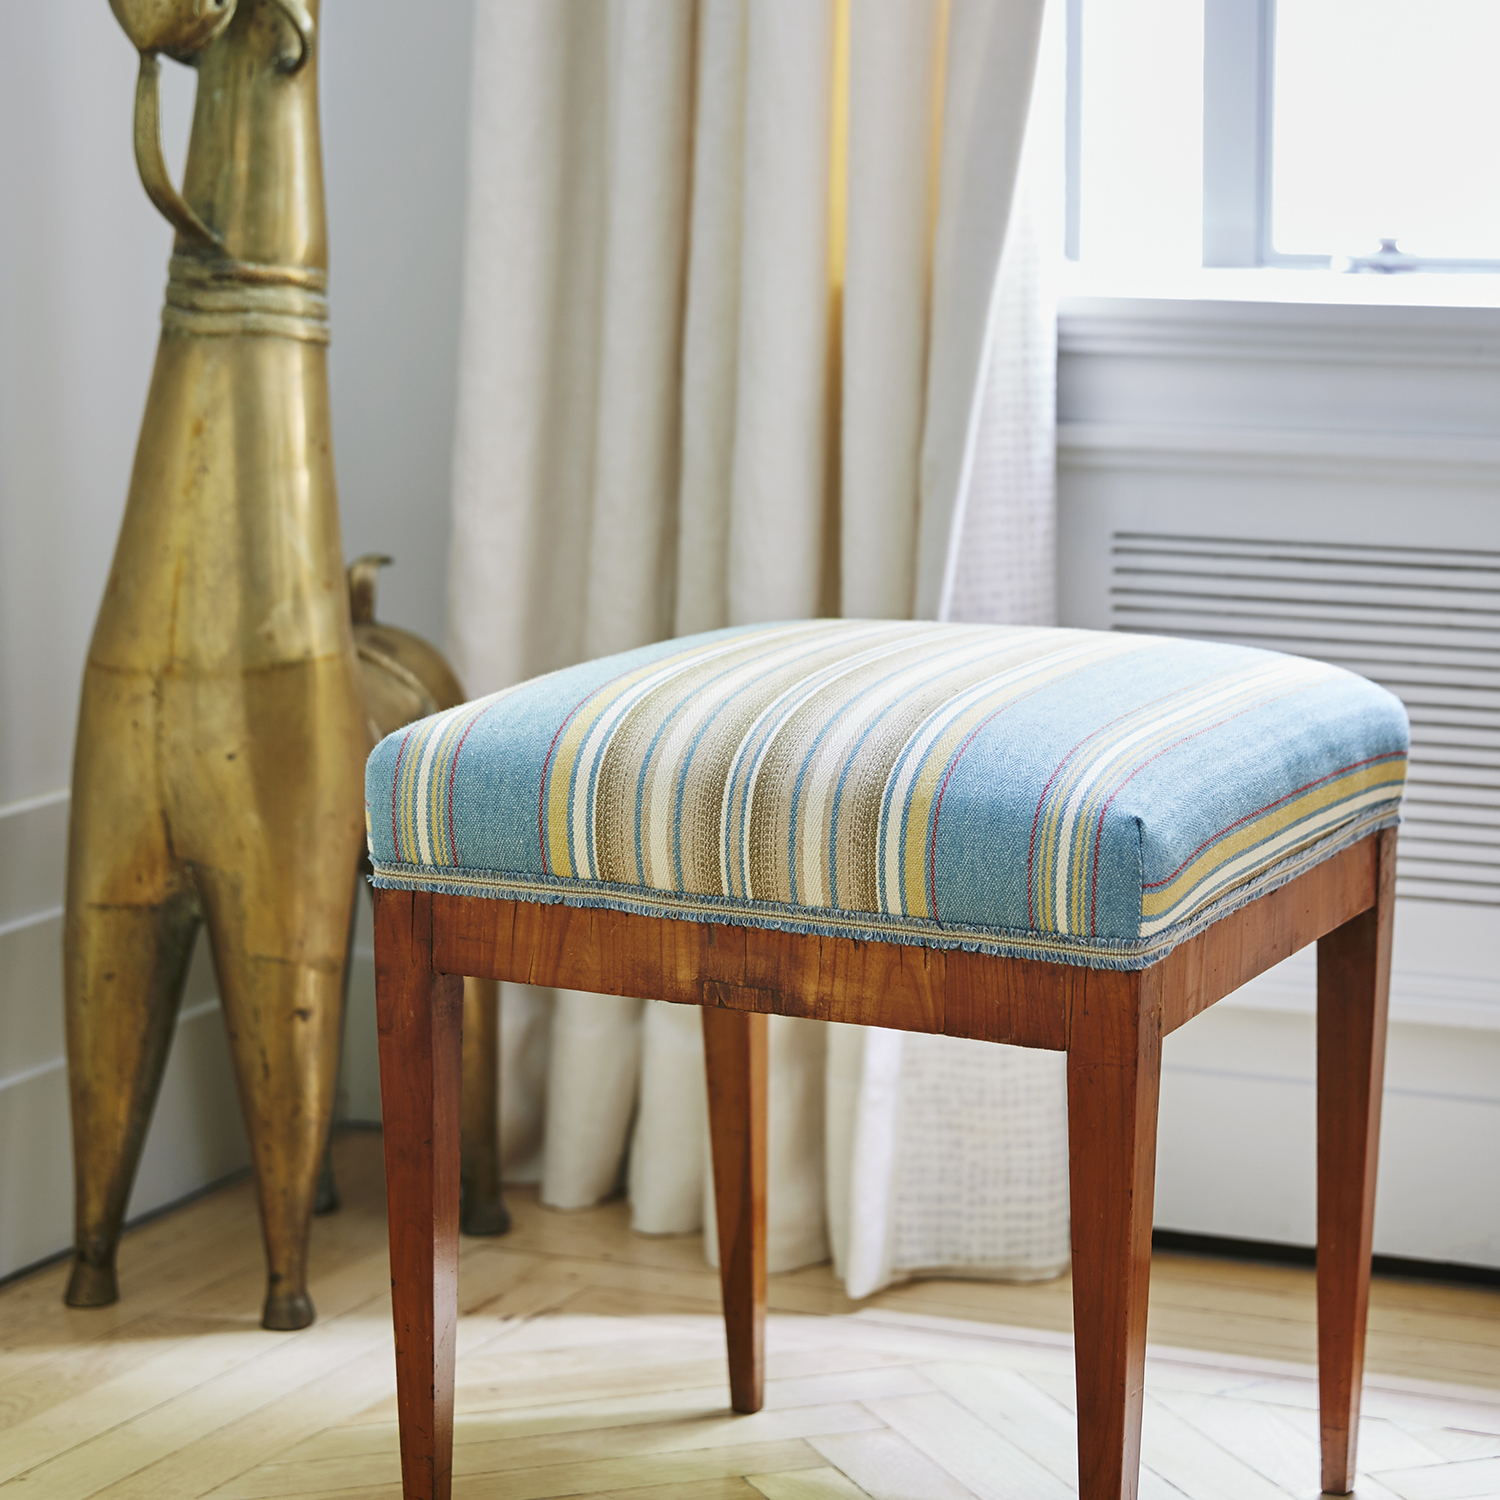 14.Blithfield - The Winthrop Collection - Windsor Stripe -  Aqua Gold Stool- B.jpg